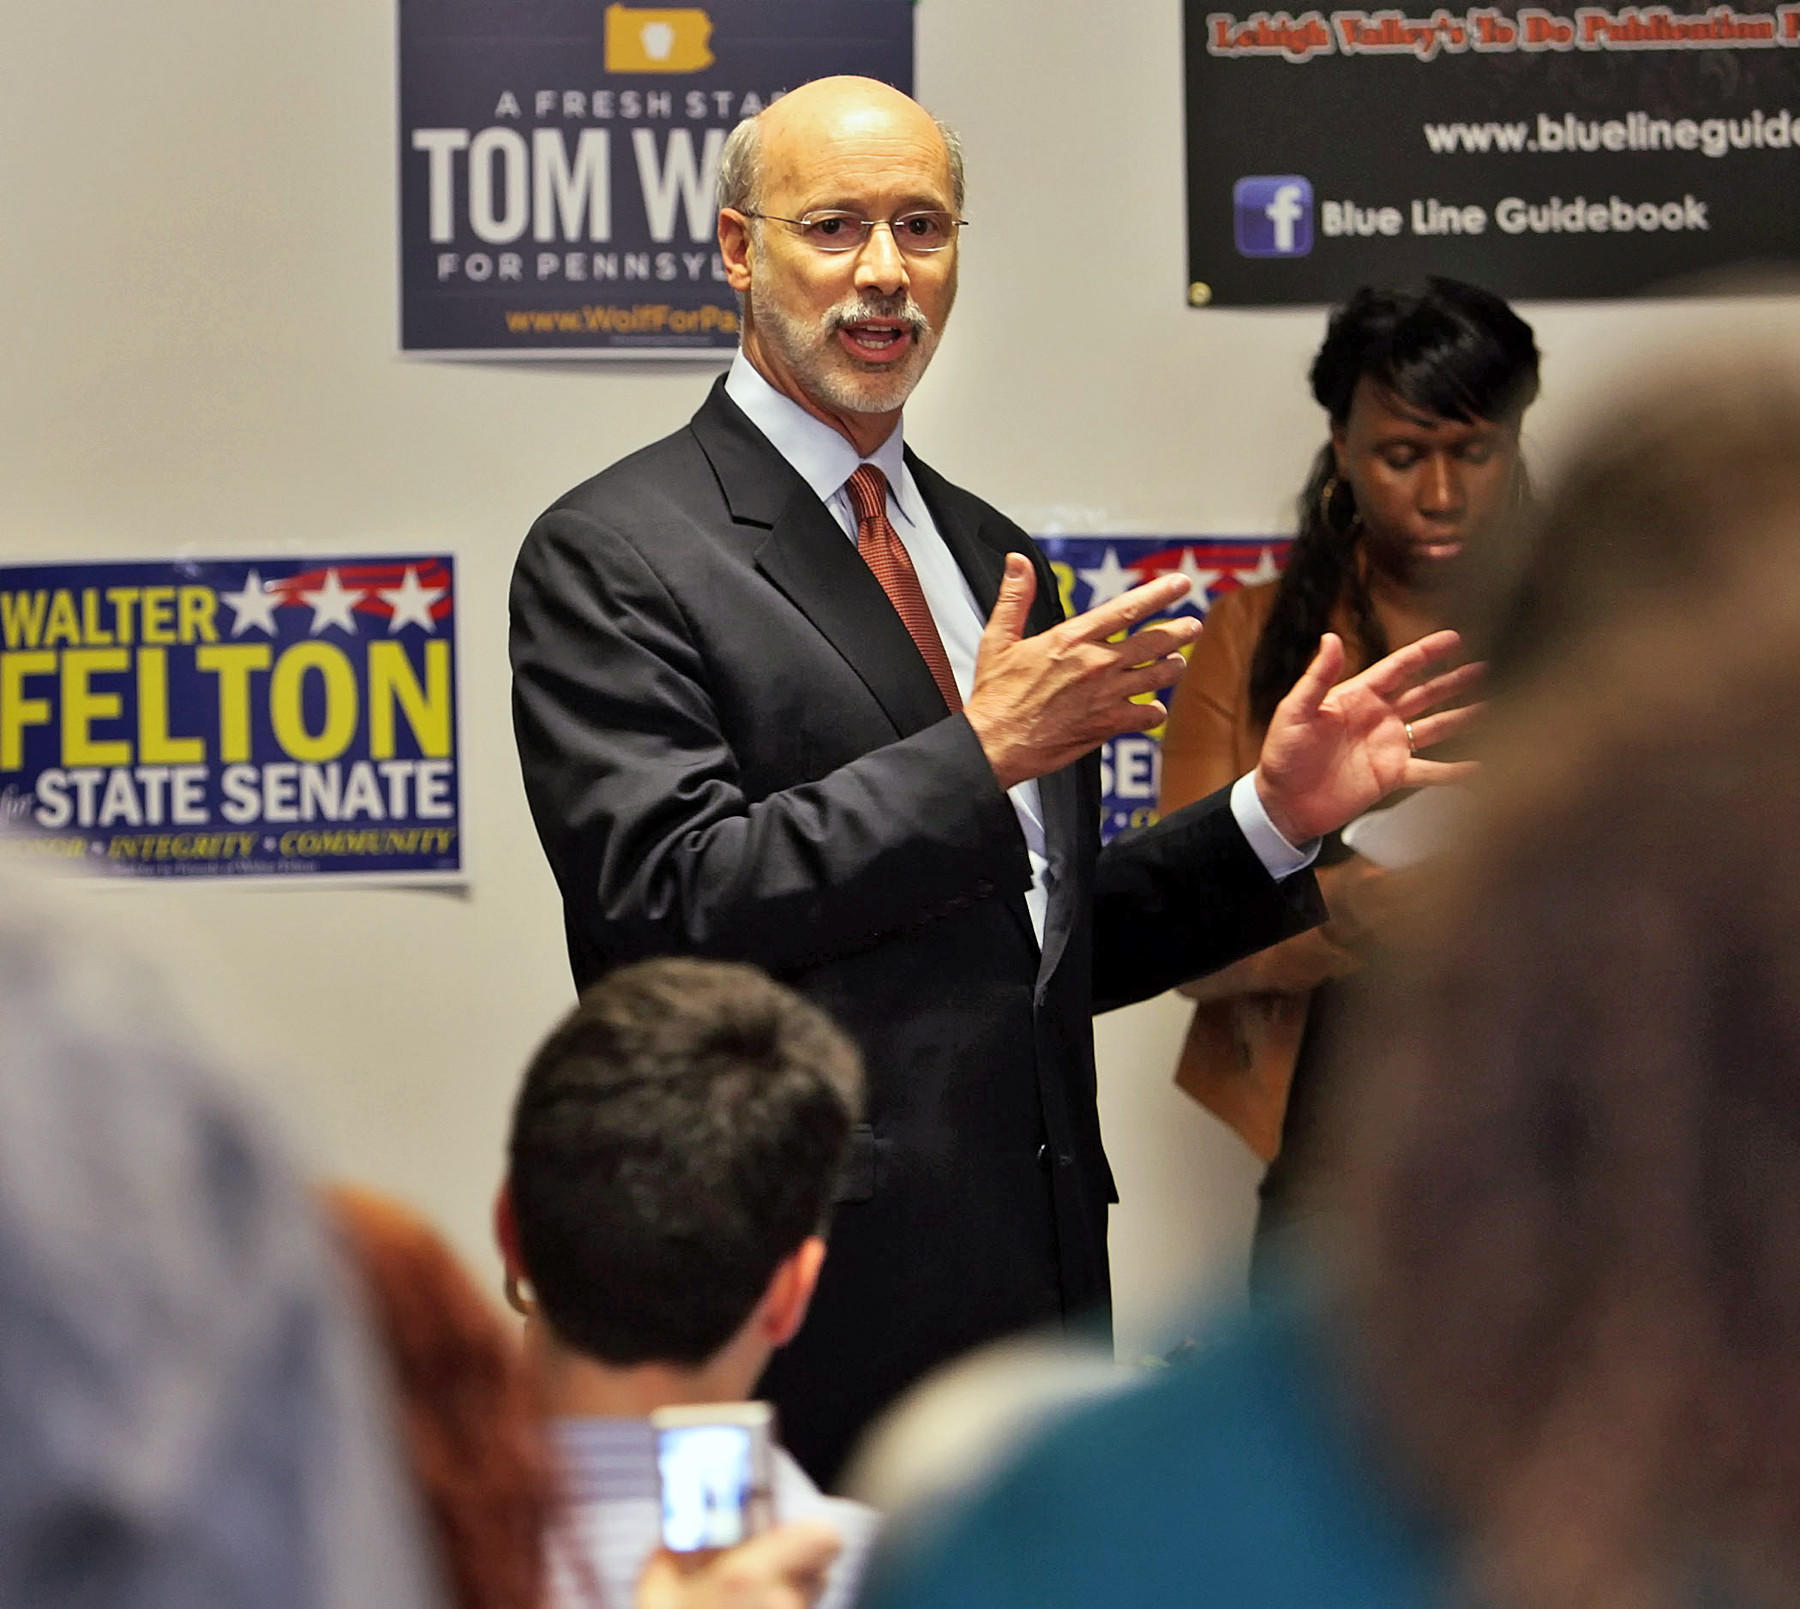 York County businessman and former state Revenue Secretary Tom Wolf during a rally for the Democratic candidate for Governor Friday, May 9, 2014 at the Cigar Factory in Allentown.